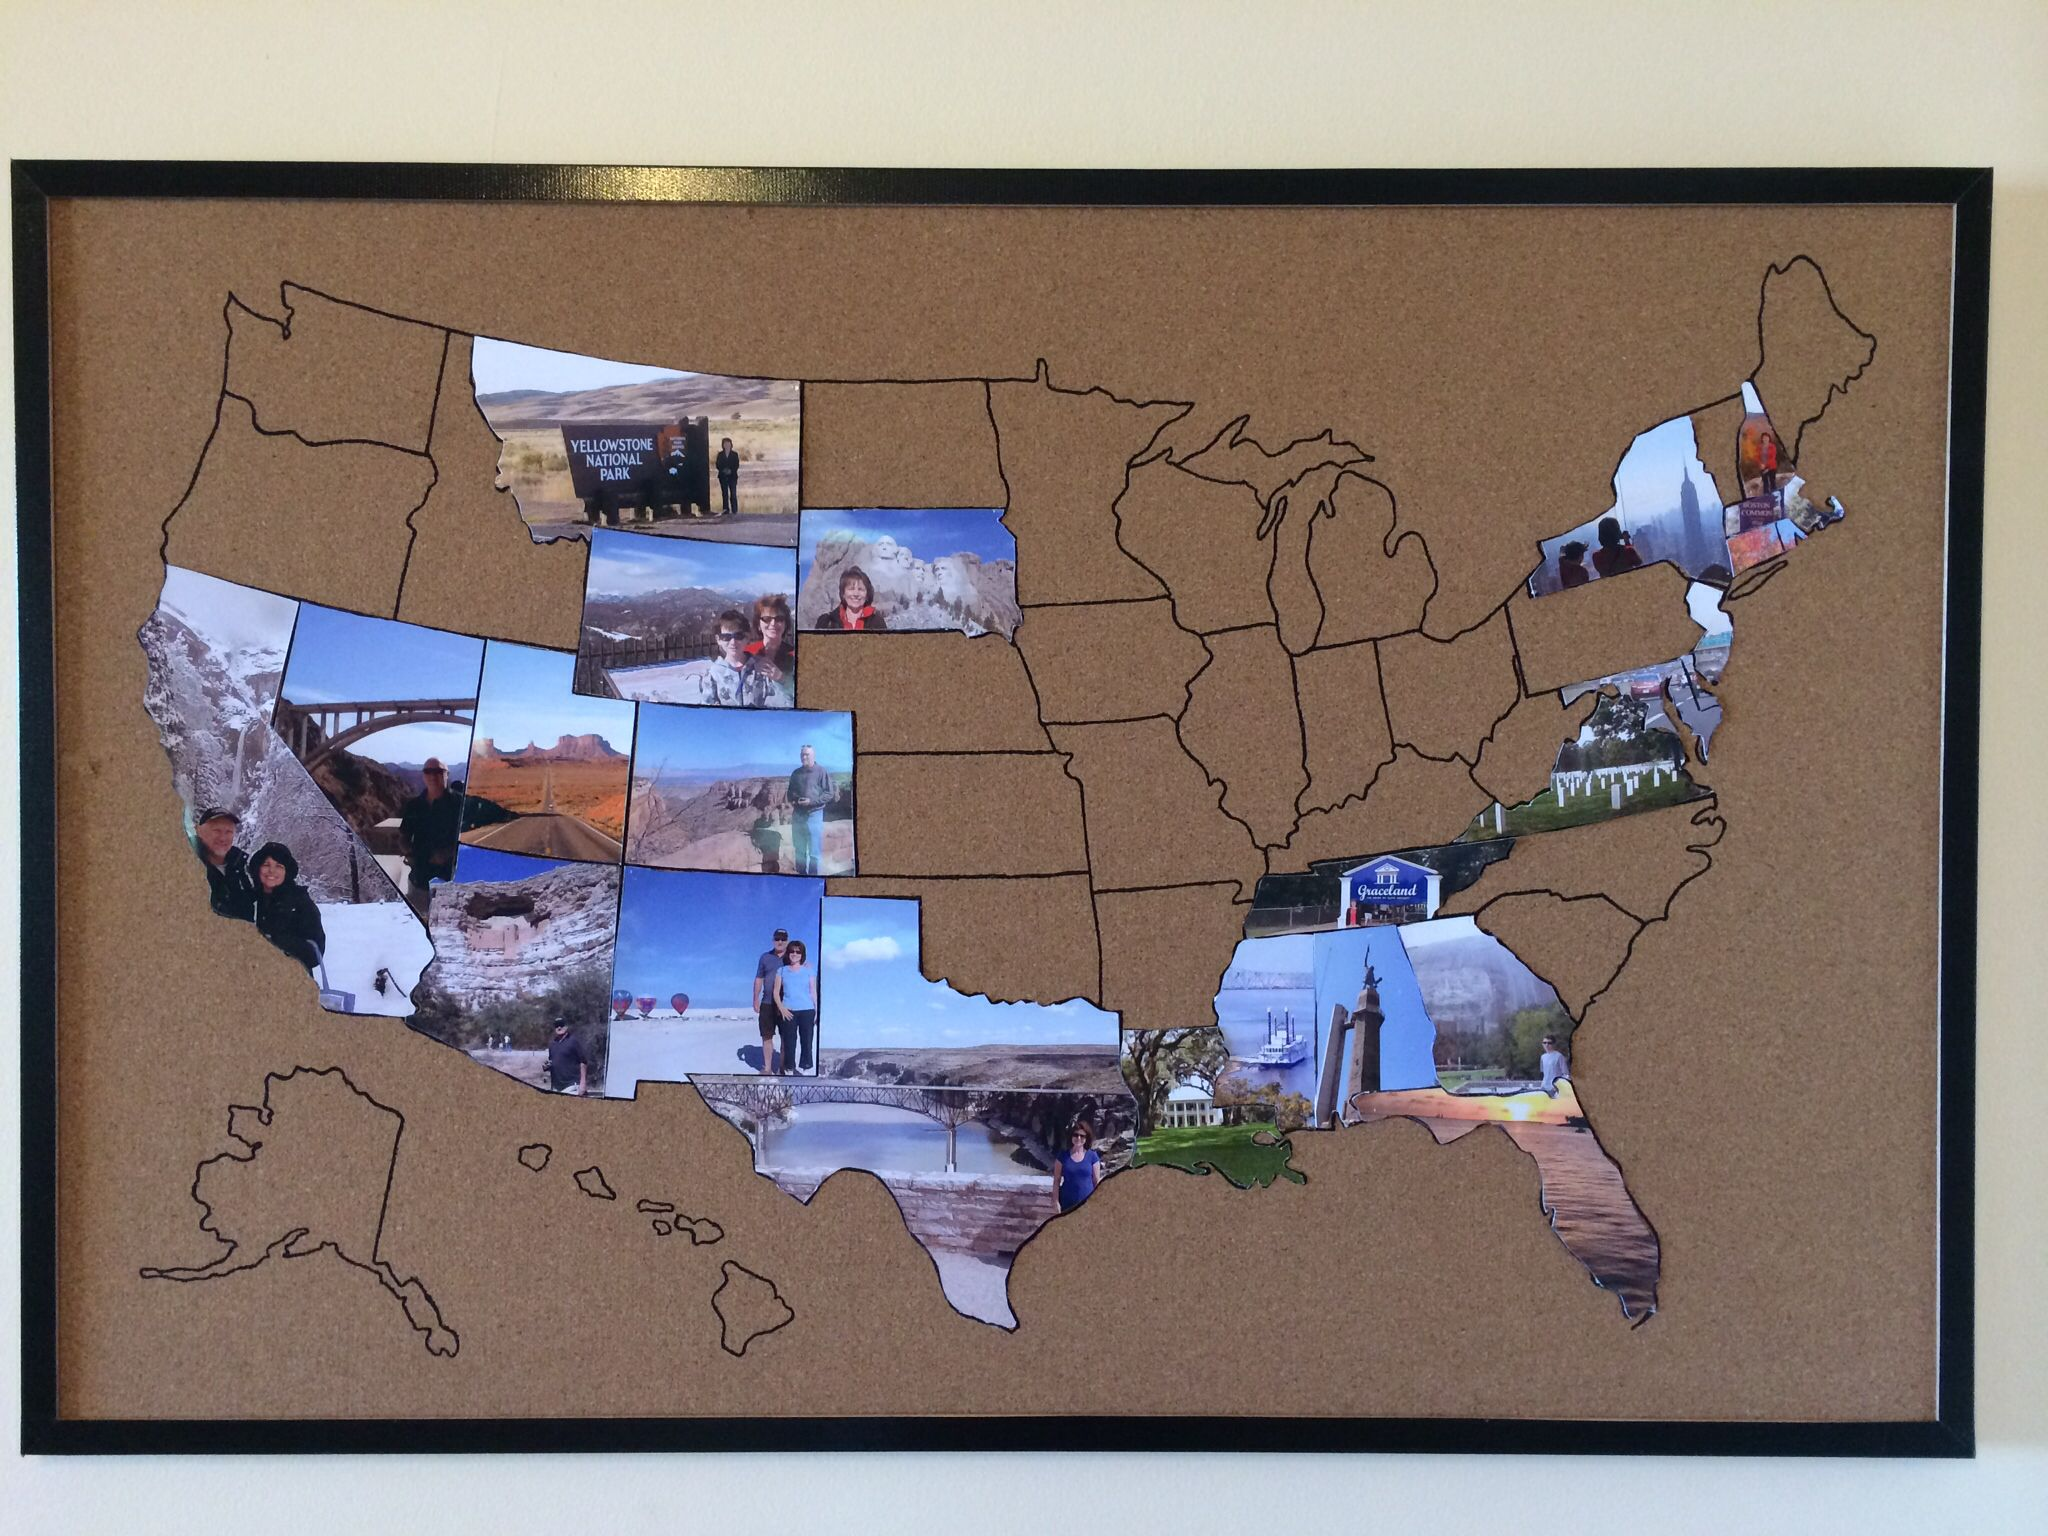 Travel Memories Map Draw A Map On A Cork Notice Board Resize - Us states traveled map